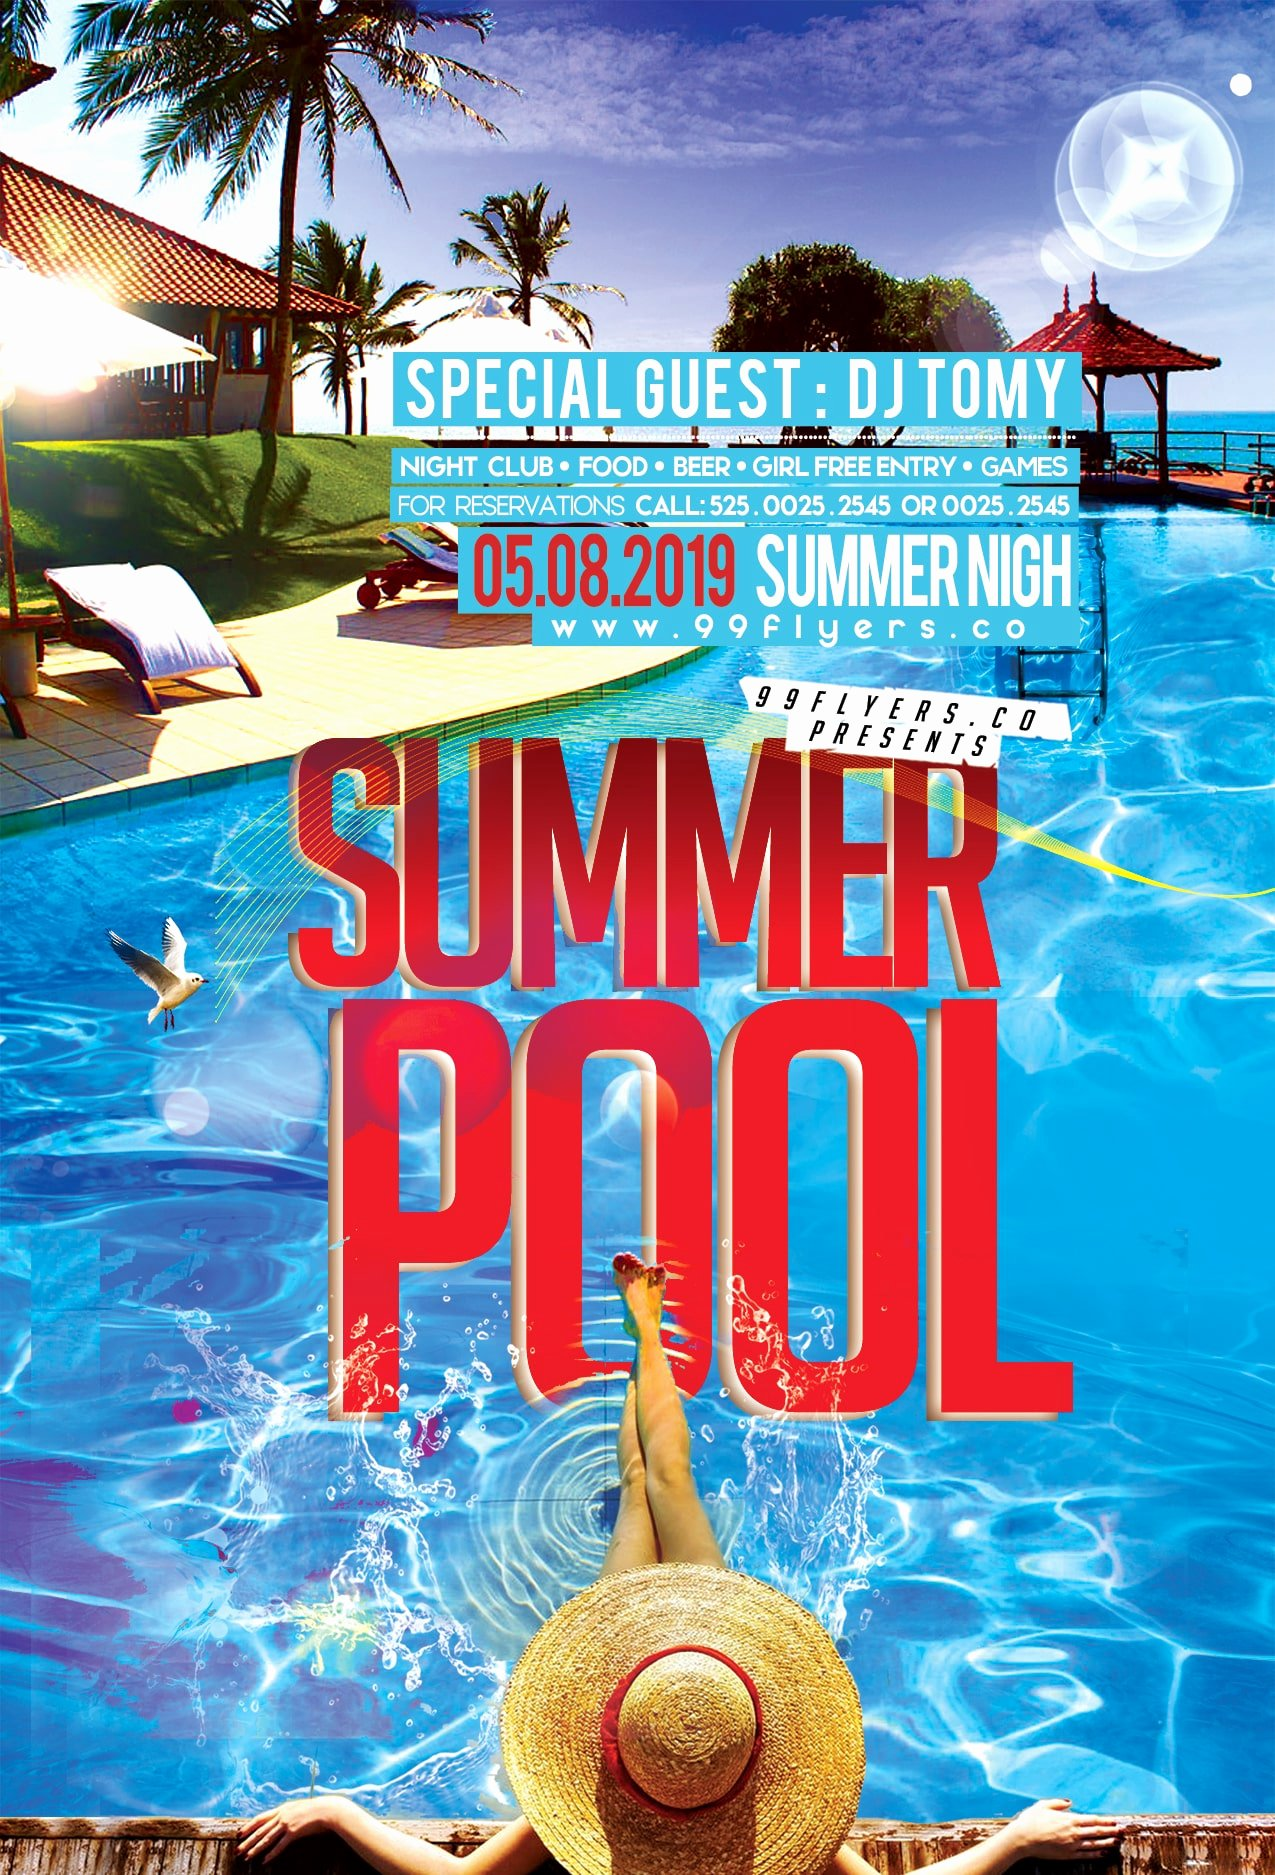 Pool Party Flyer Templates Free Unique Summer Pool Party Free Psd Flyer Template Free Psd Flyer